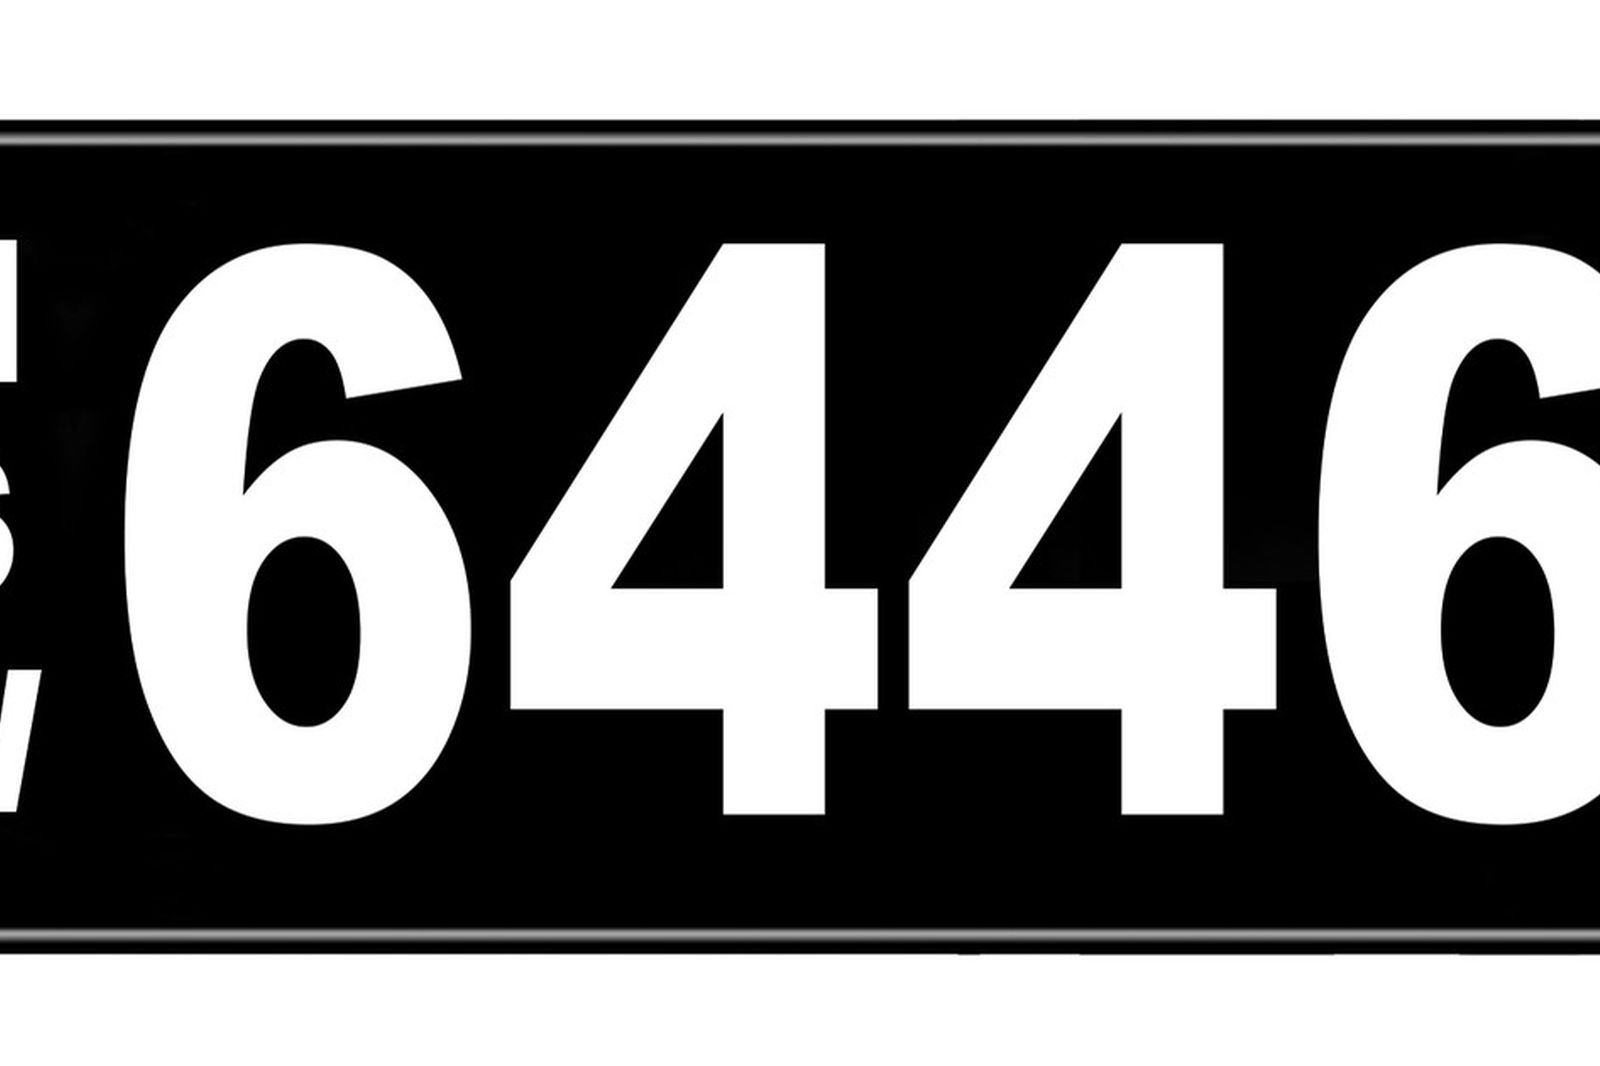 Number Plates - NSW Numerical Number Plates '6446'